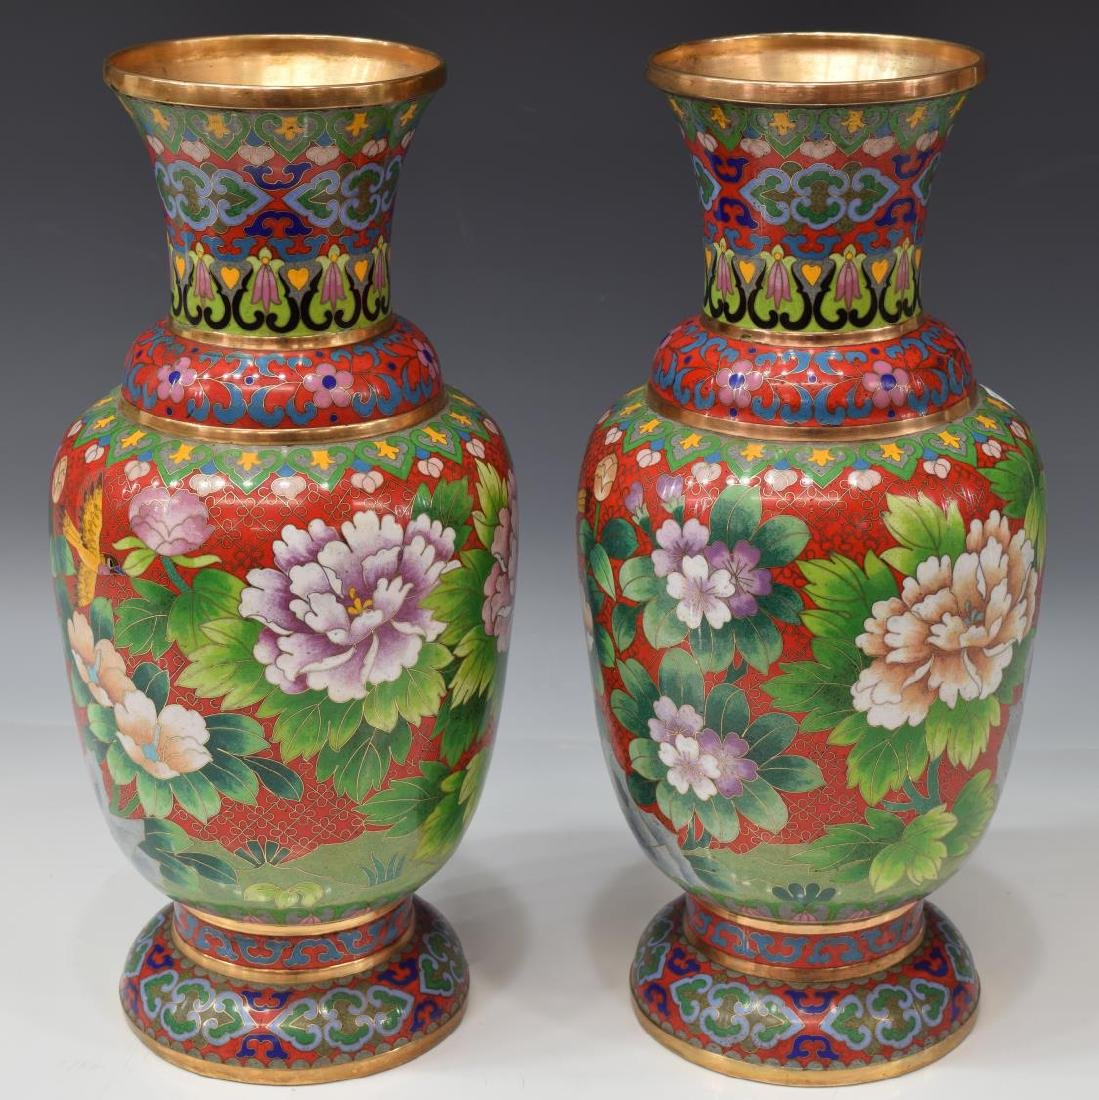 (2) CHINESE RED CLOISONNE VASES, FLOWERS & BIRDS